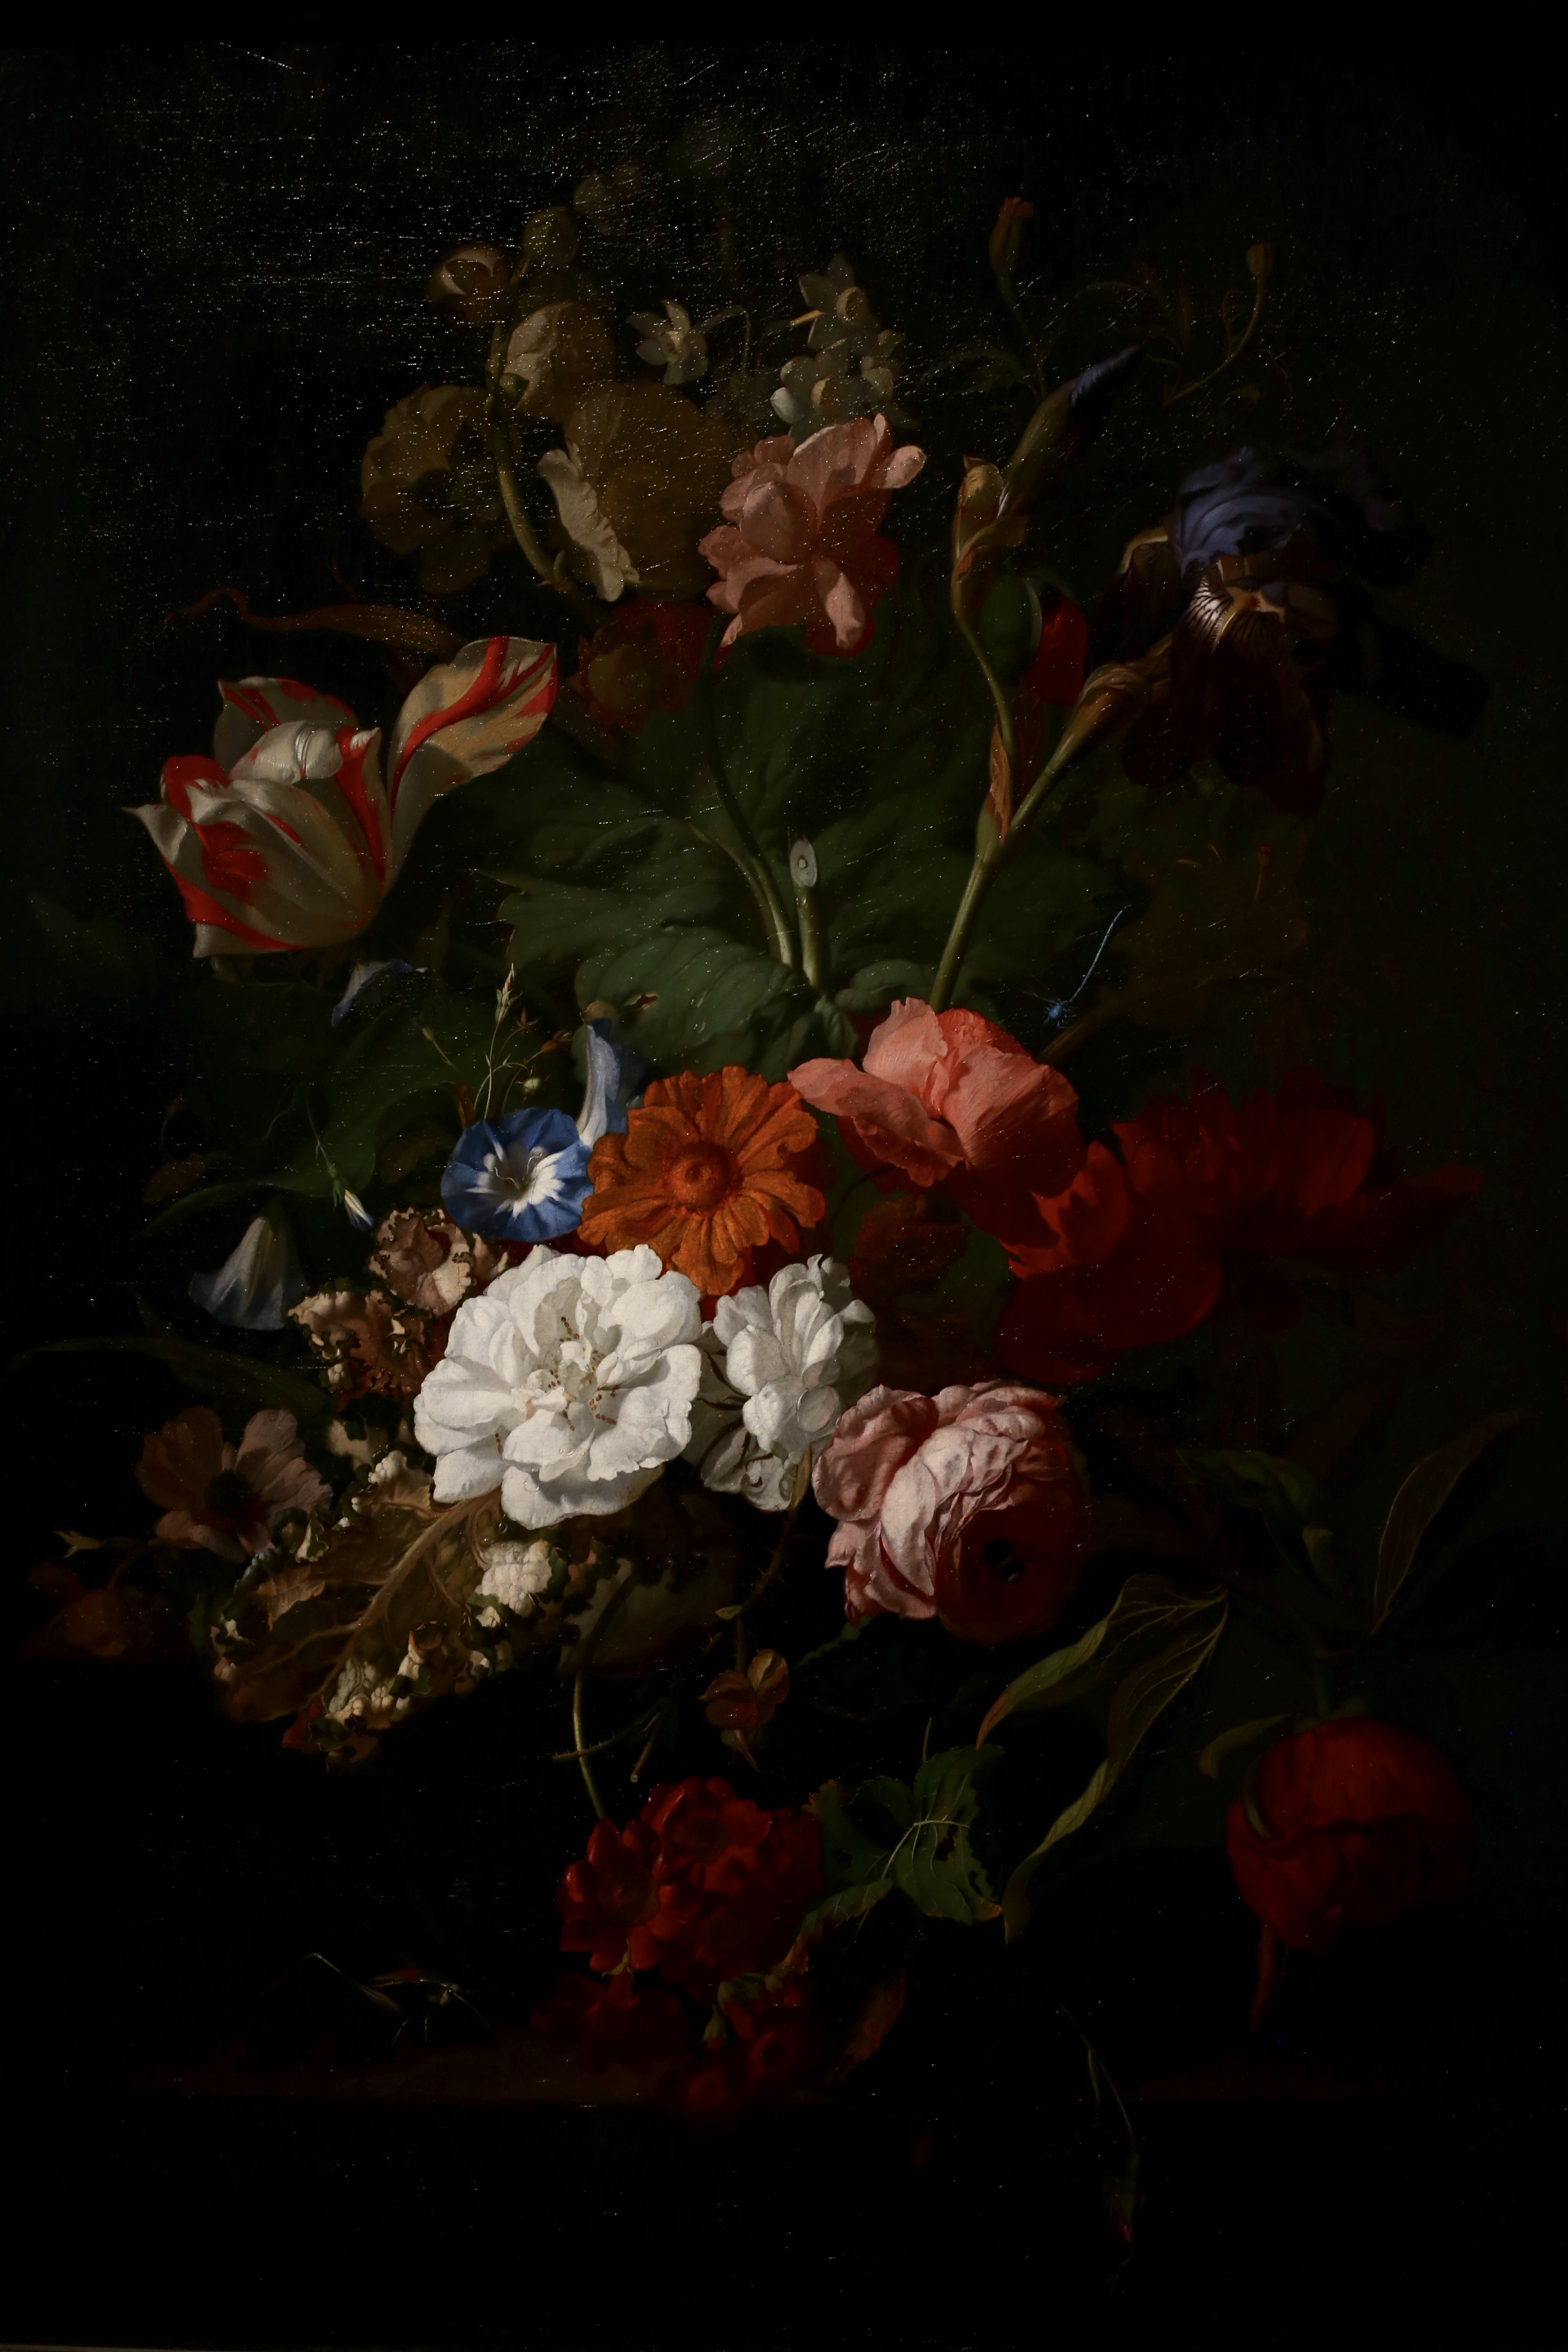 Vase of Flowers dutch painting by Rachel Ruysch